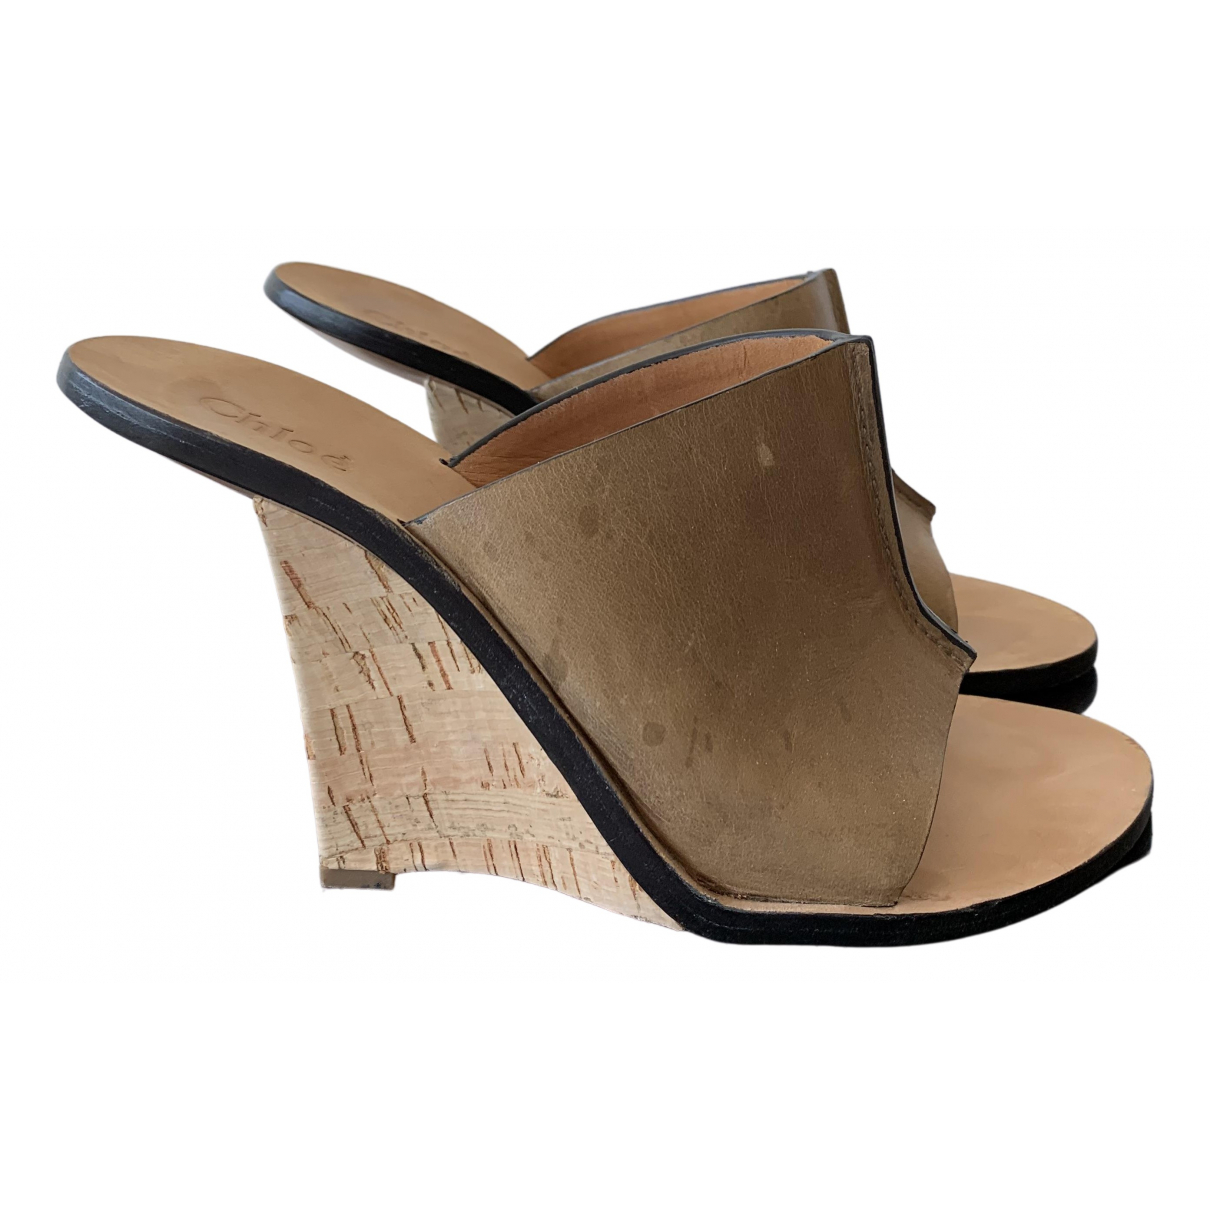 Chloé \N Brown Leather Sandals for Women 39 EU